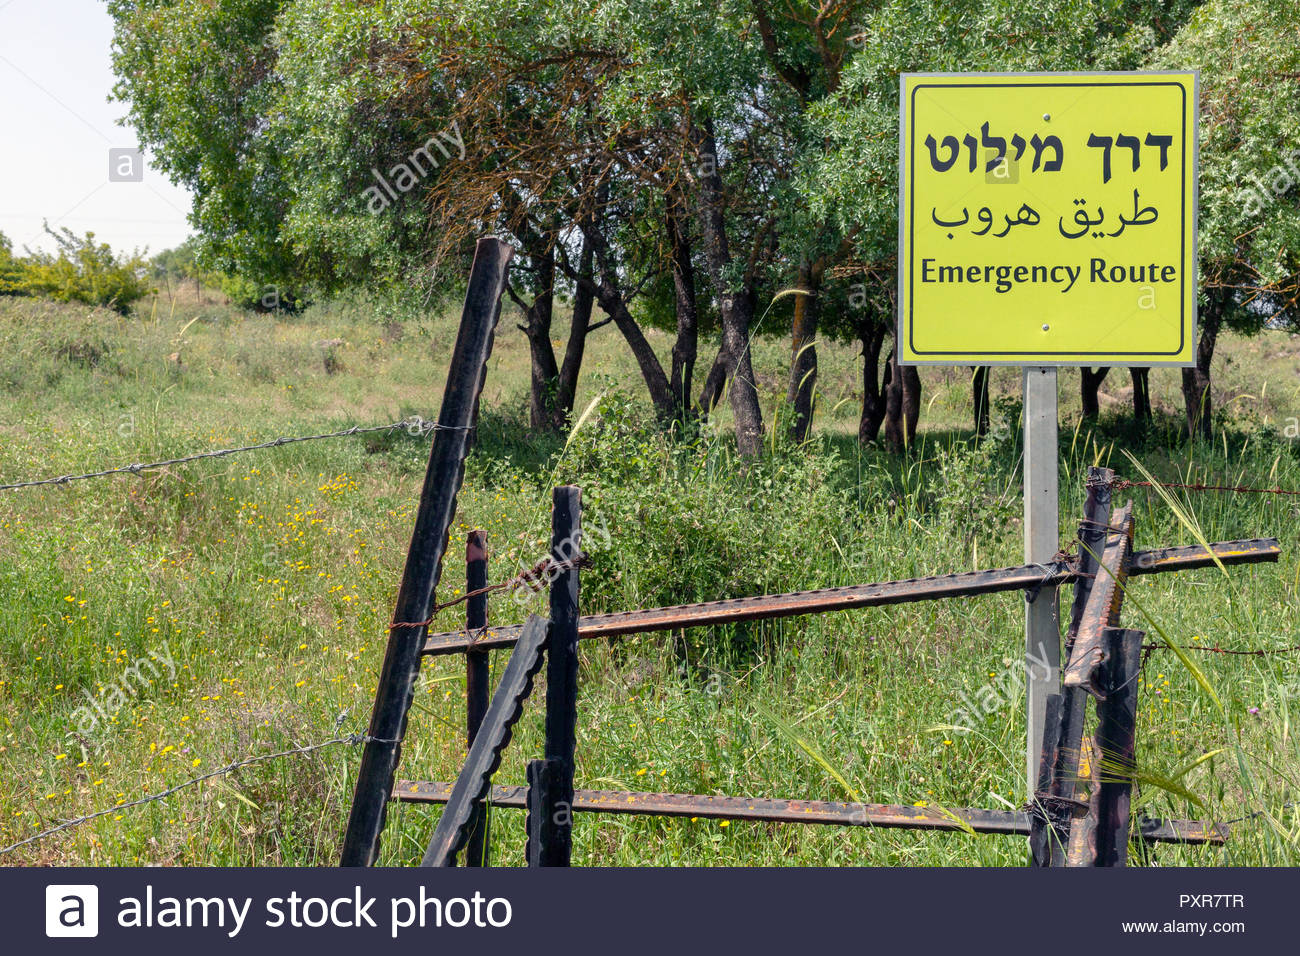 'Emergency Route' warning sign written in Hebrew, Arabic, and English language. The 'Route' is blocked by metal bars and barbed wire - Stock Image